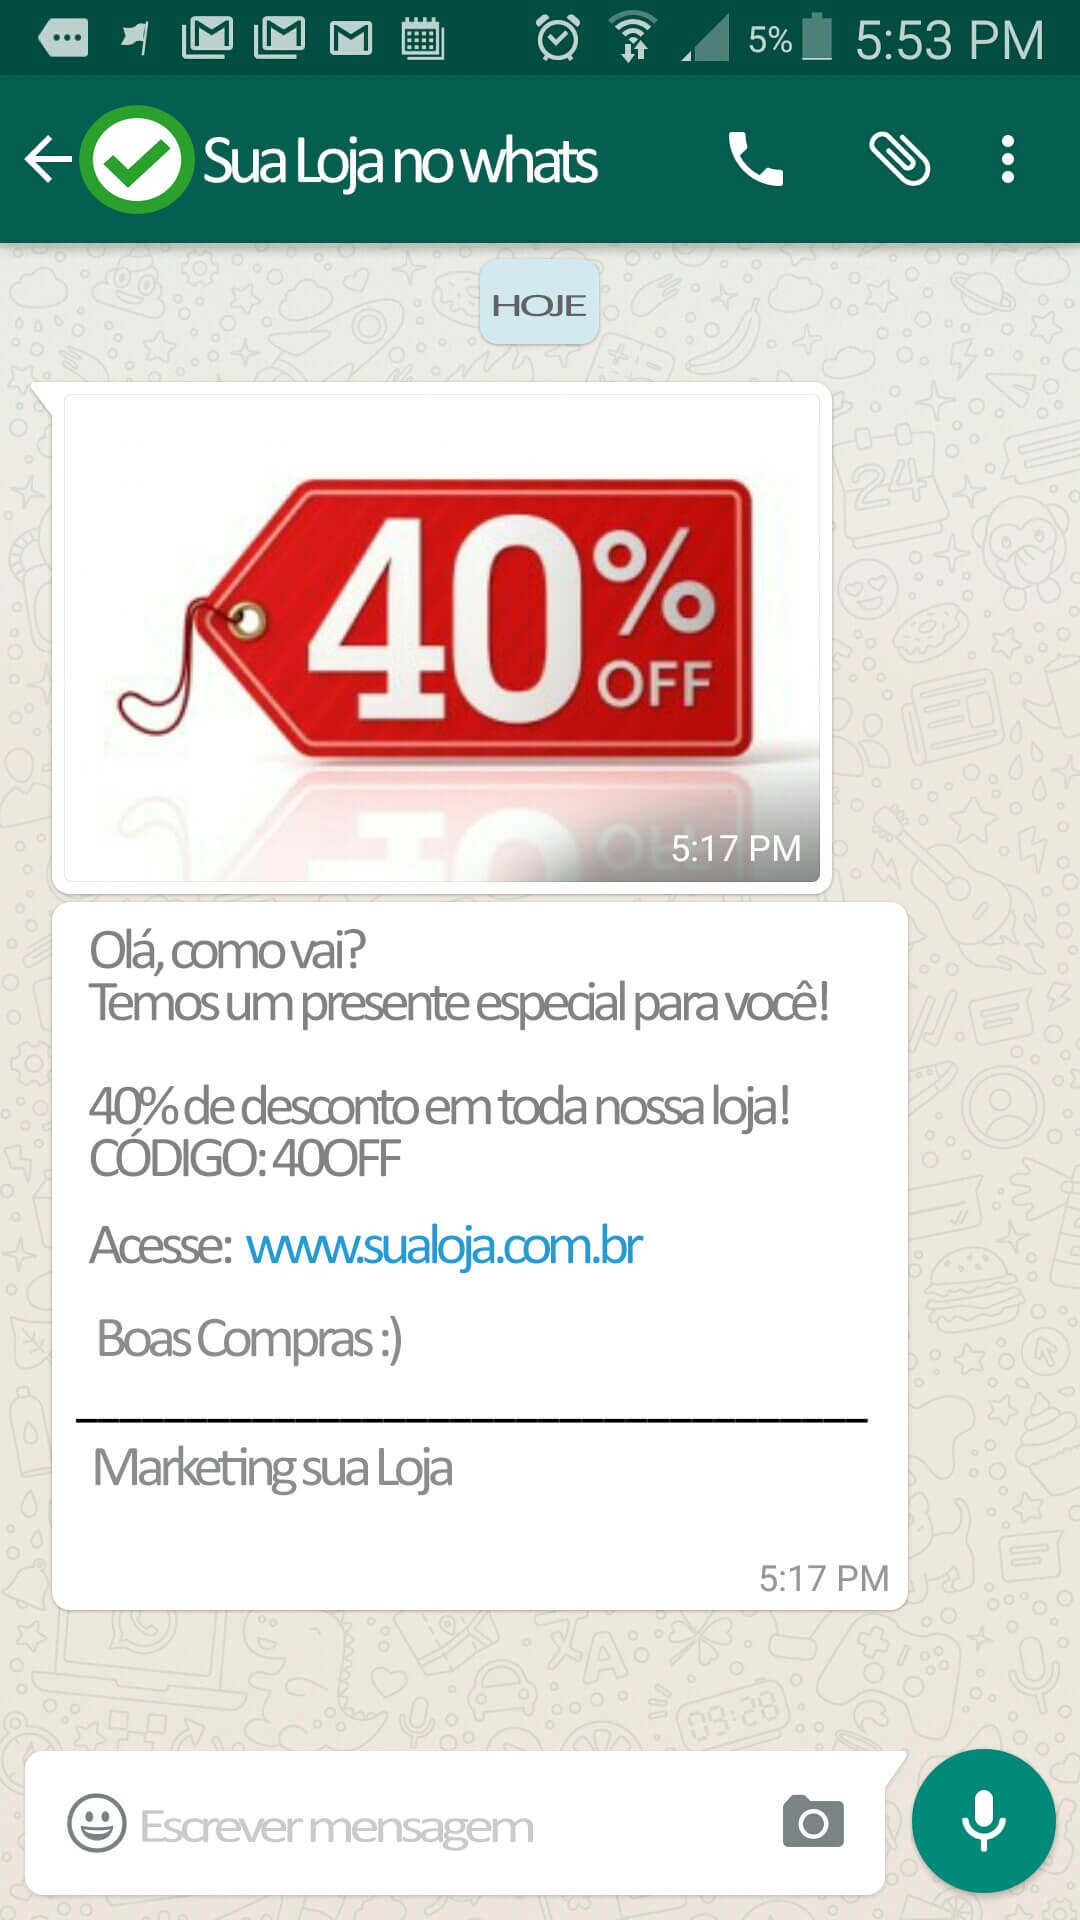 03 - Marketing WhatsApp